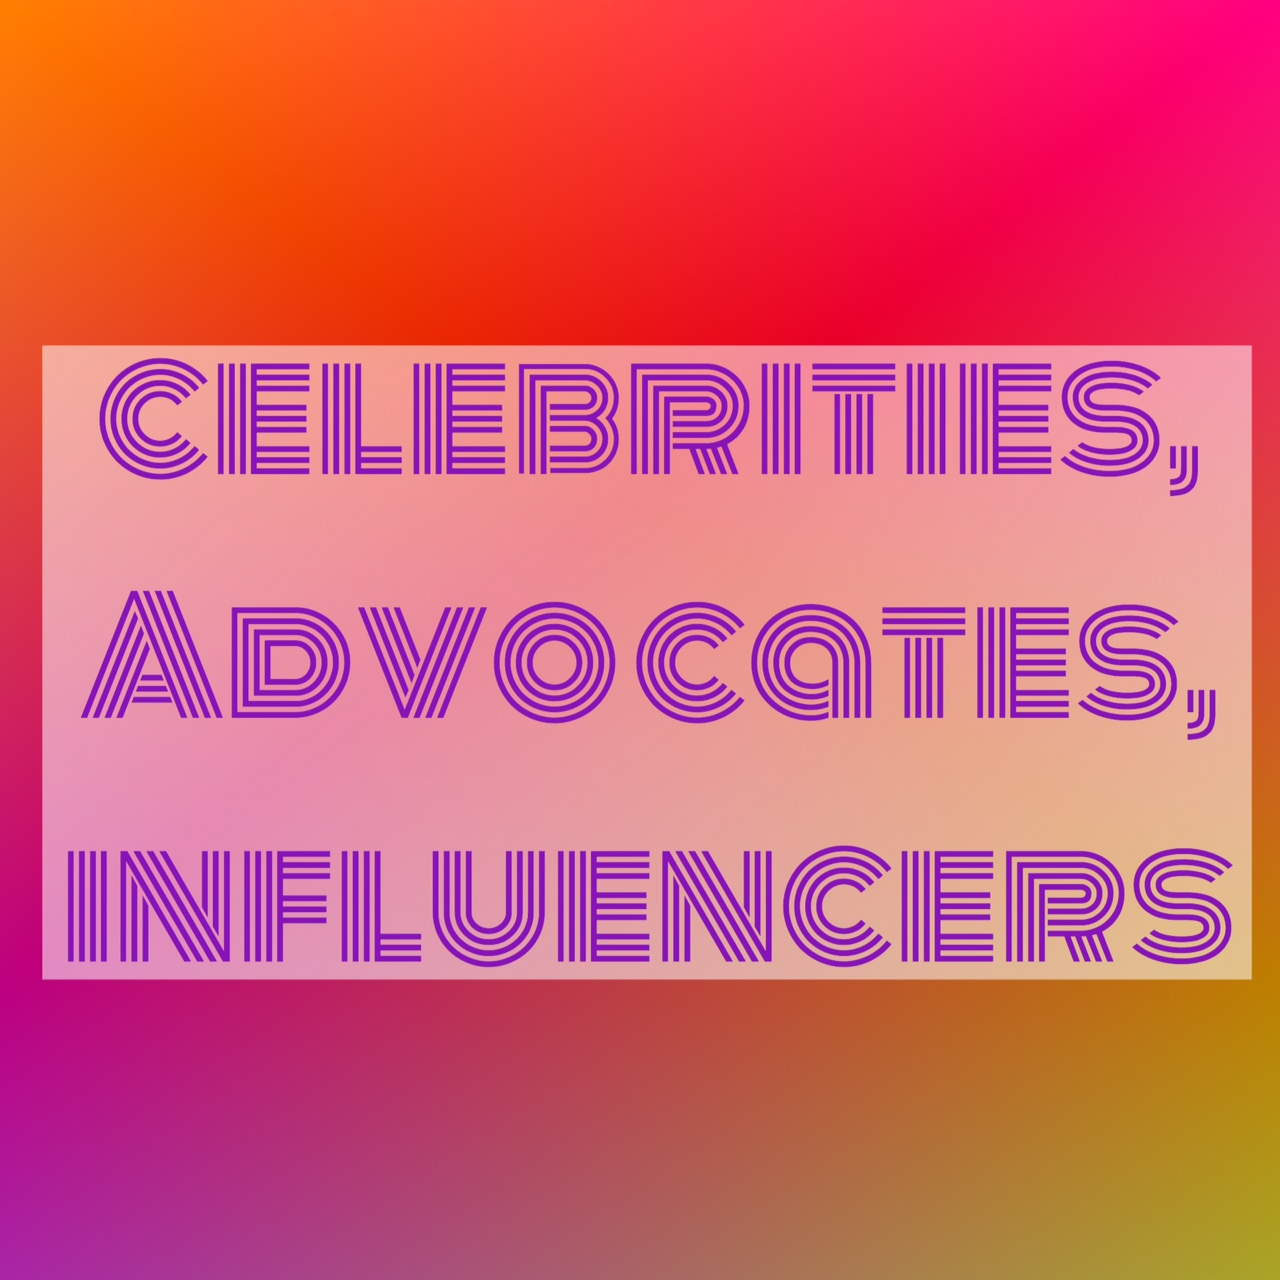 Celebrities, Advocates, Influencers: Your Social Media Army